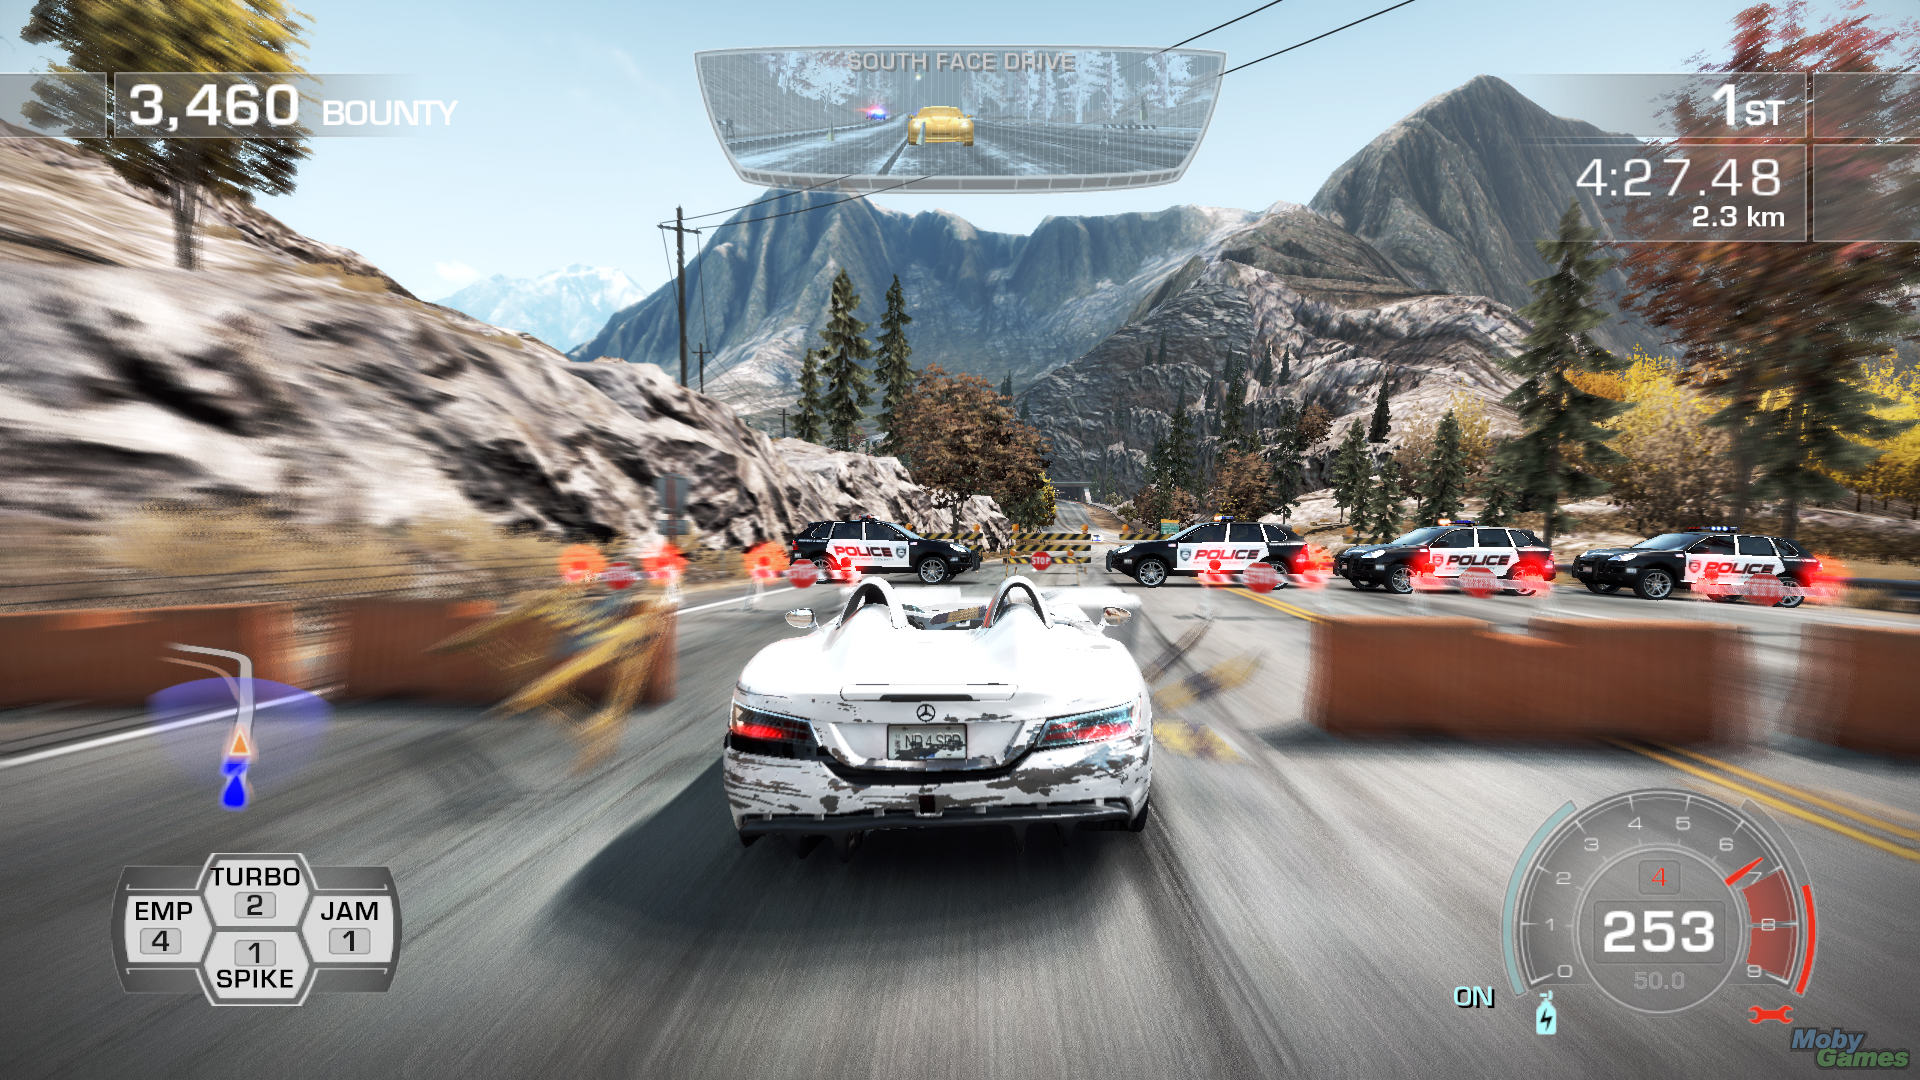 Need for Speed: Hot Pursuit - Limited Edition (2010/PC/Русский), RePack от xatab